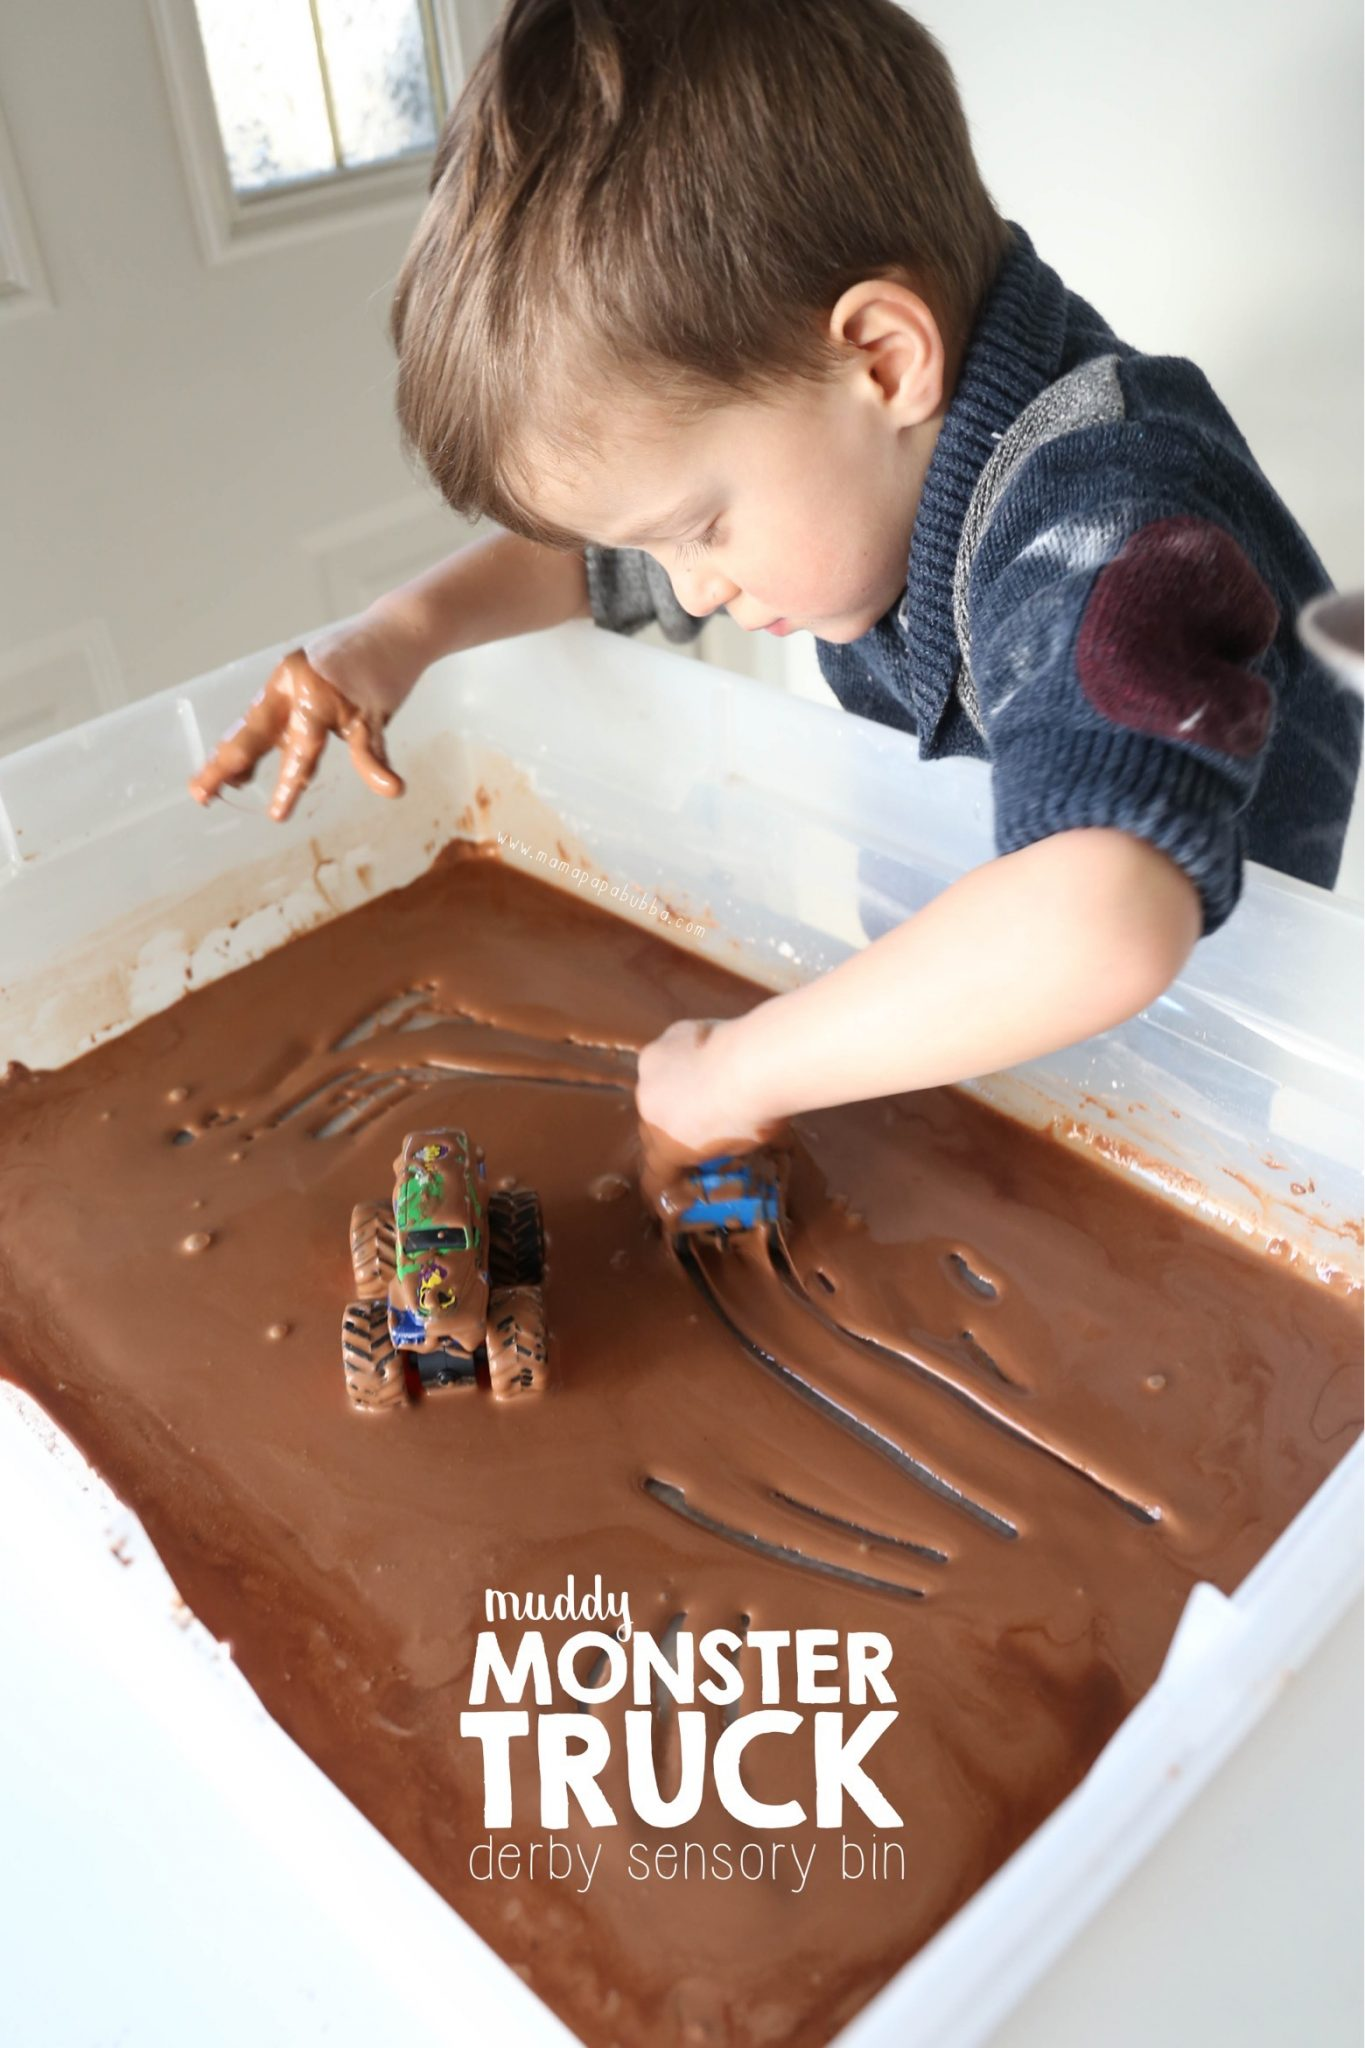 Muddy Monster Truck Derby Sensory Bin | Mama Papa Bubba